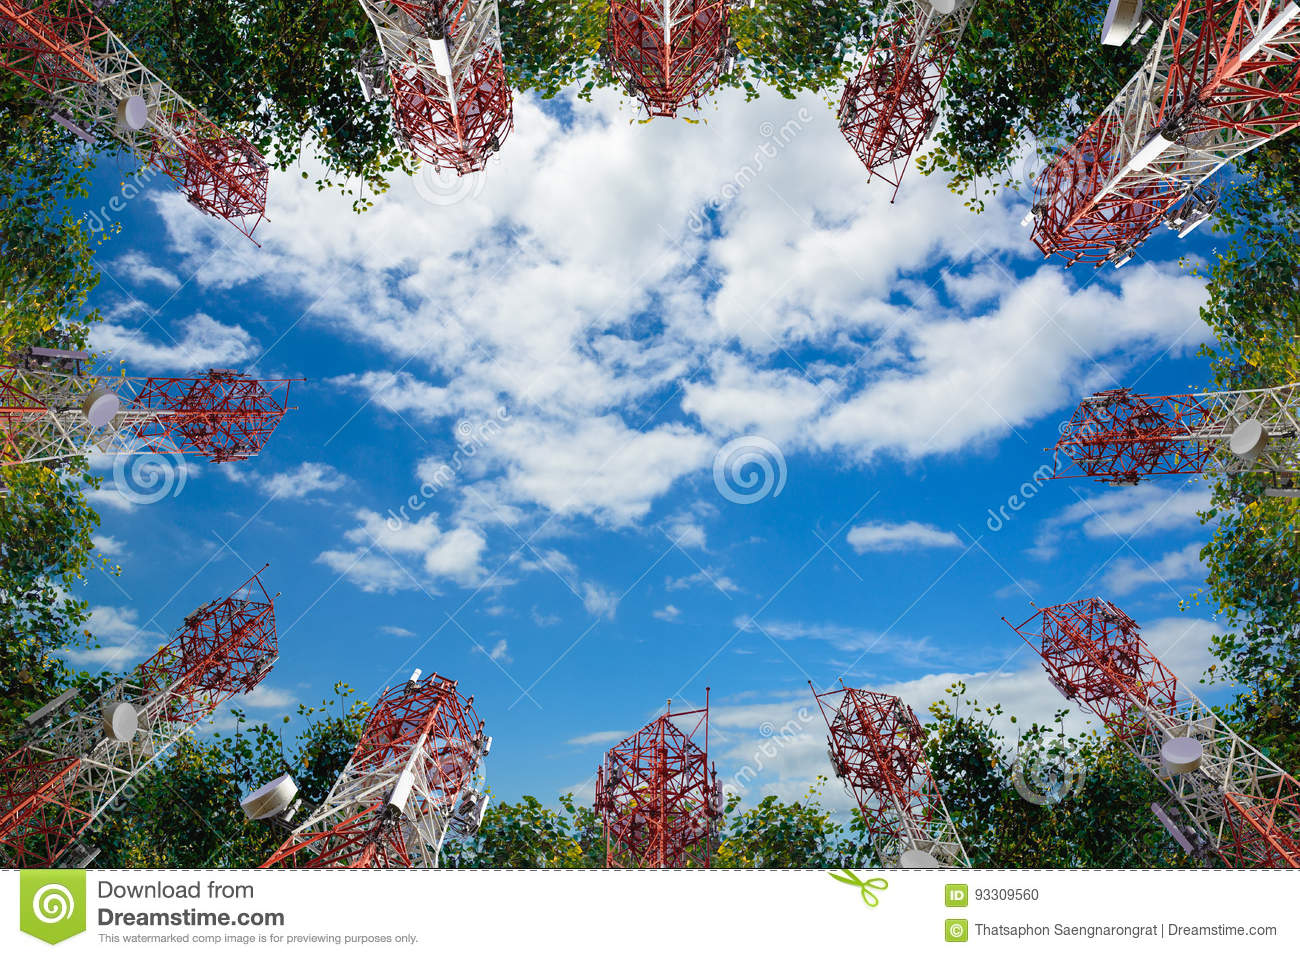 Mobile phone communication antenna tower and tree with cloud blu